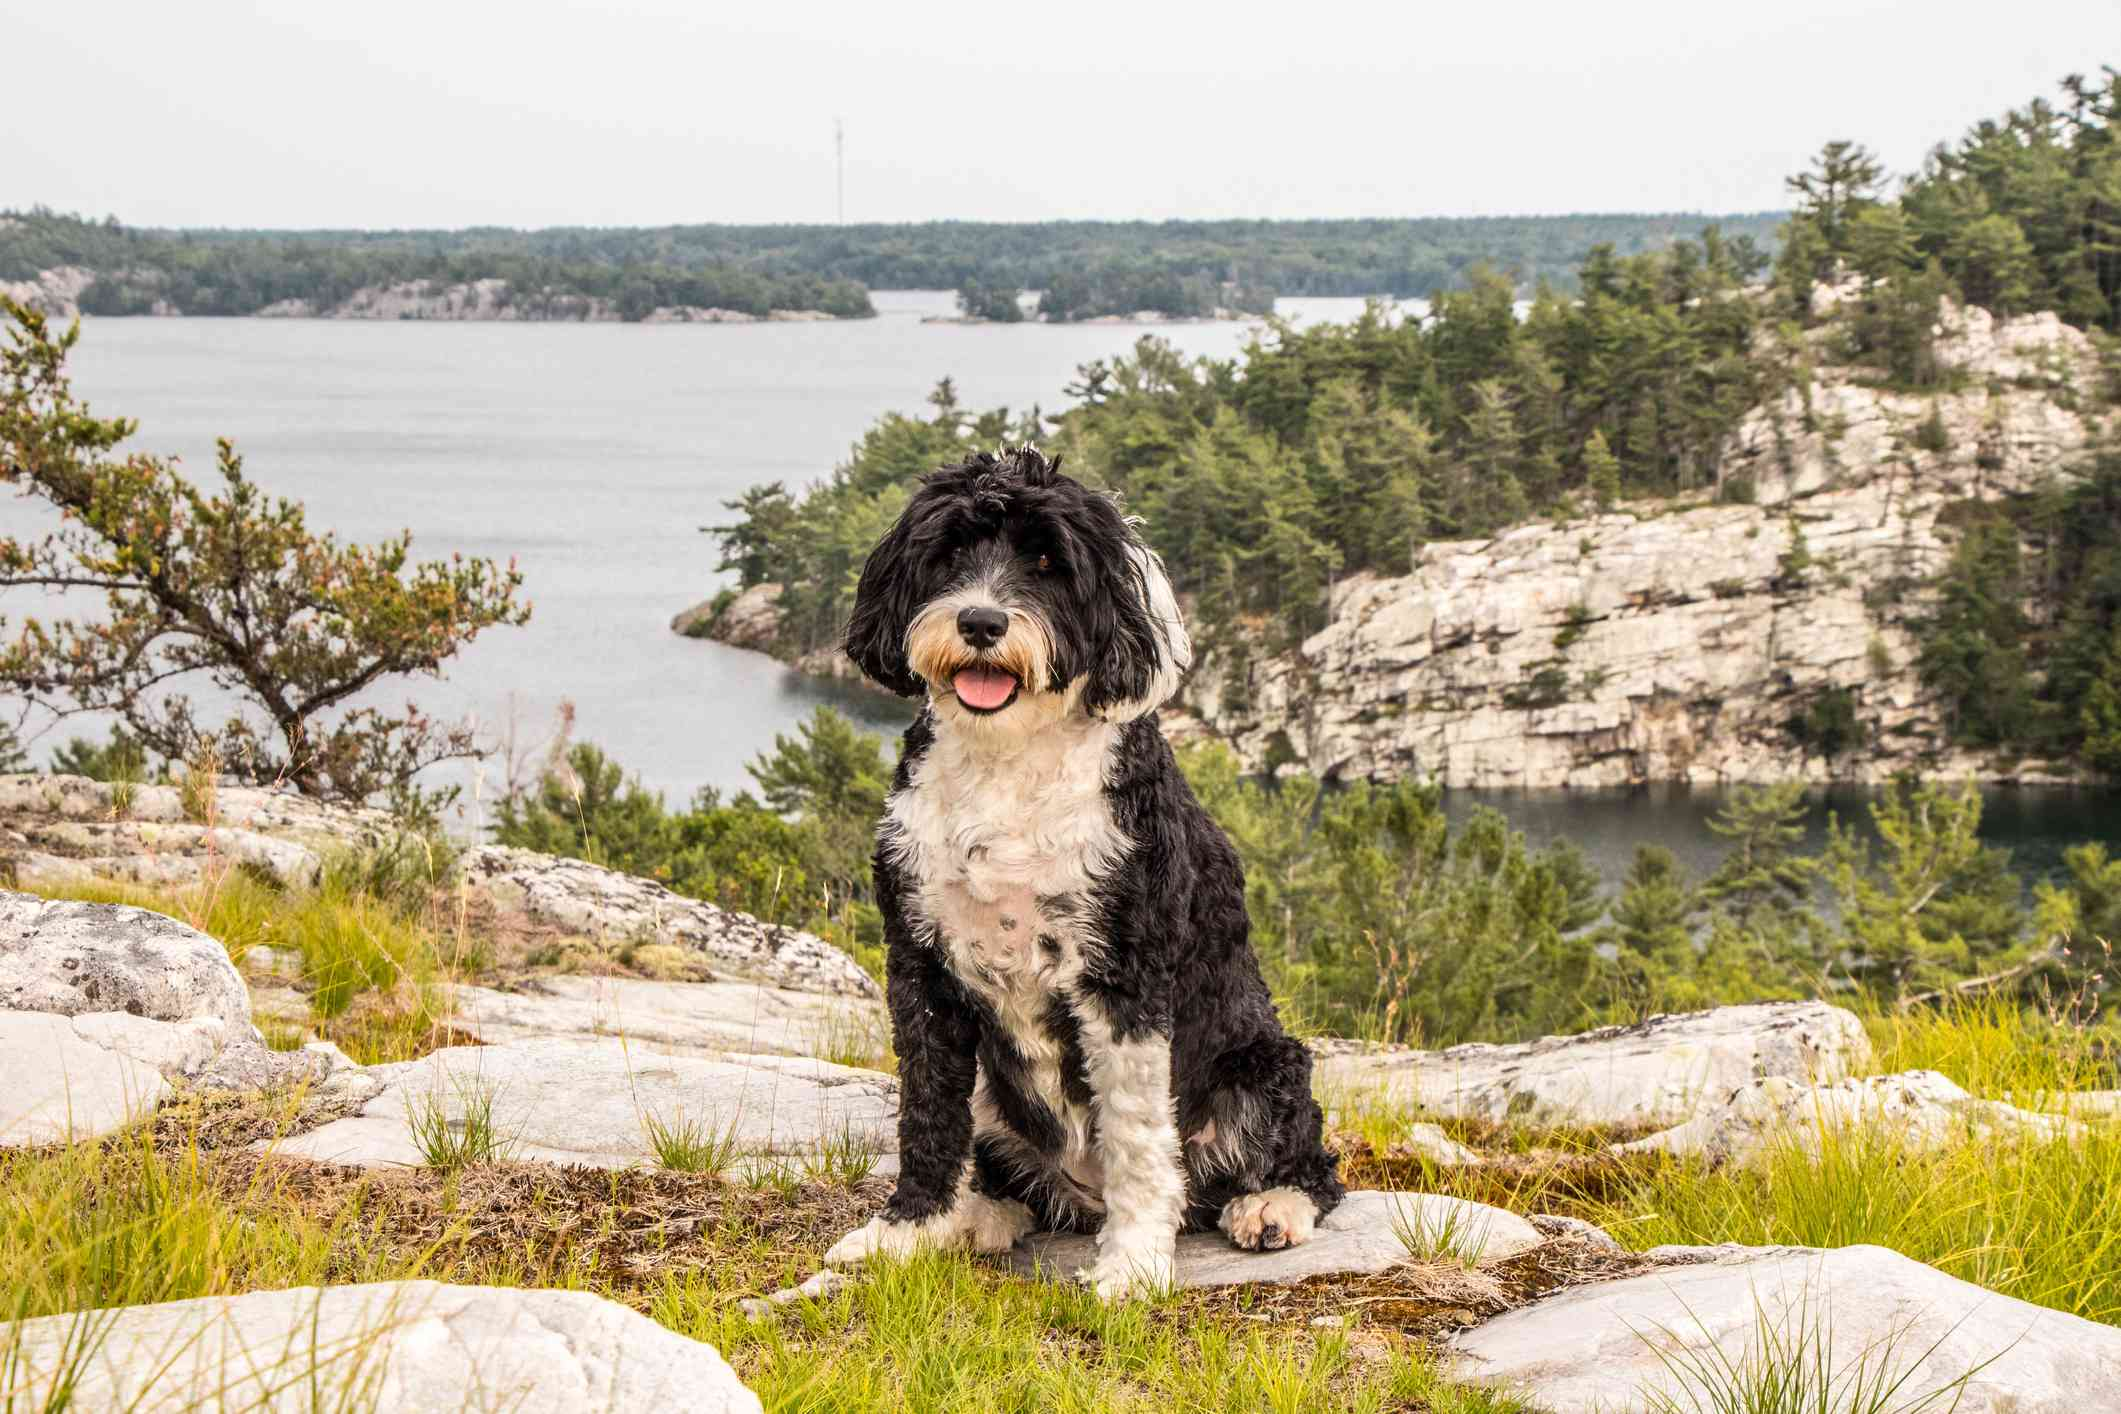 black and white Portuguese water dog sitting on a hill adjacent to water